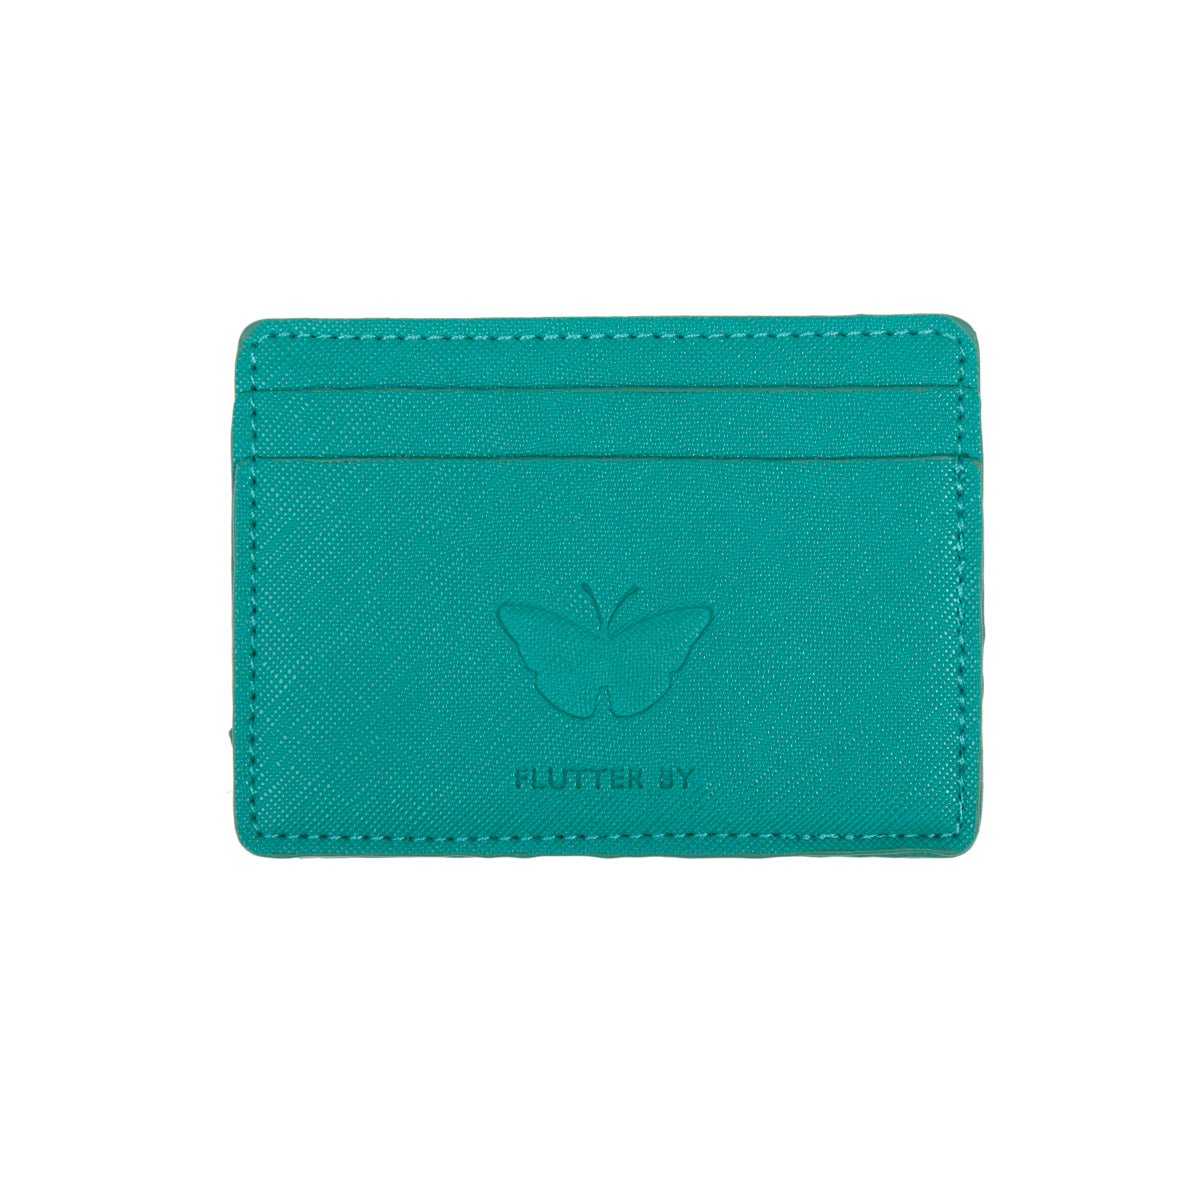 Teal butterflies card holder by Sophie Allport.